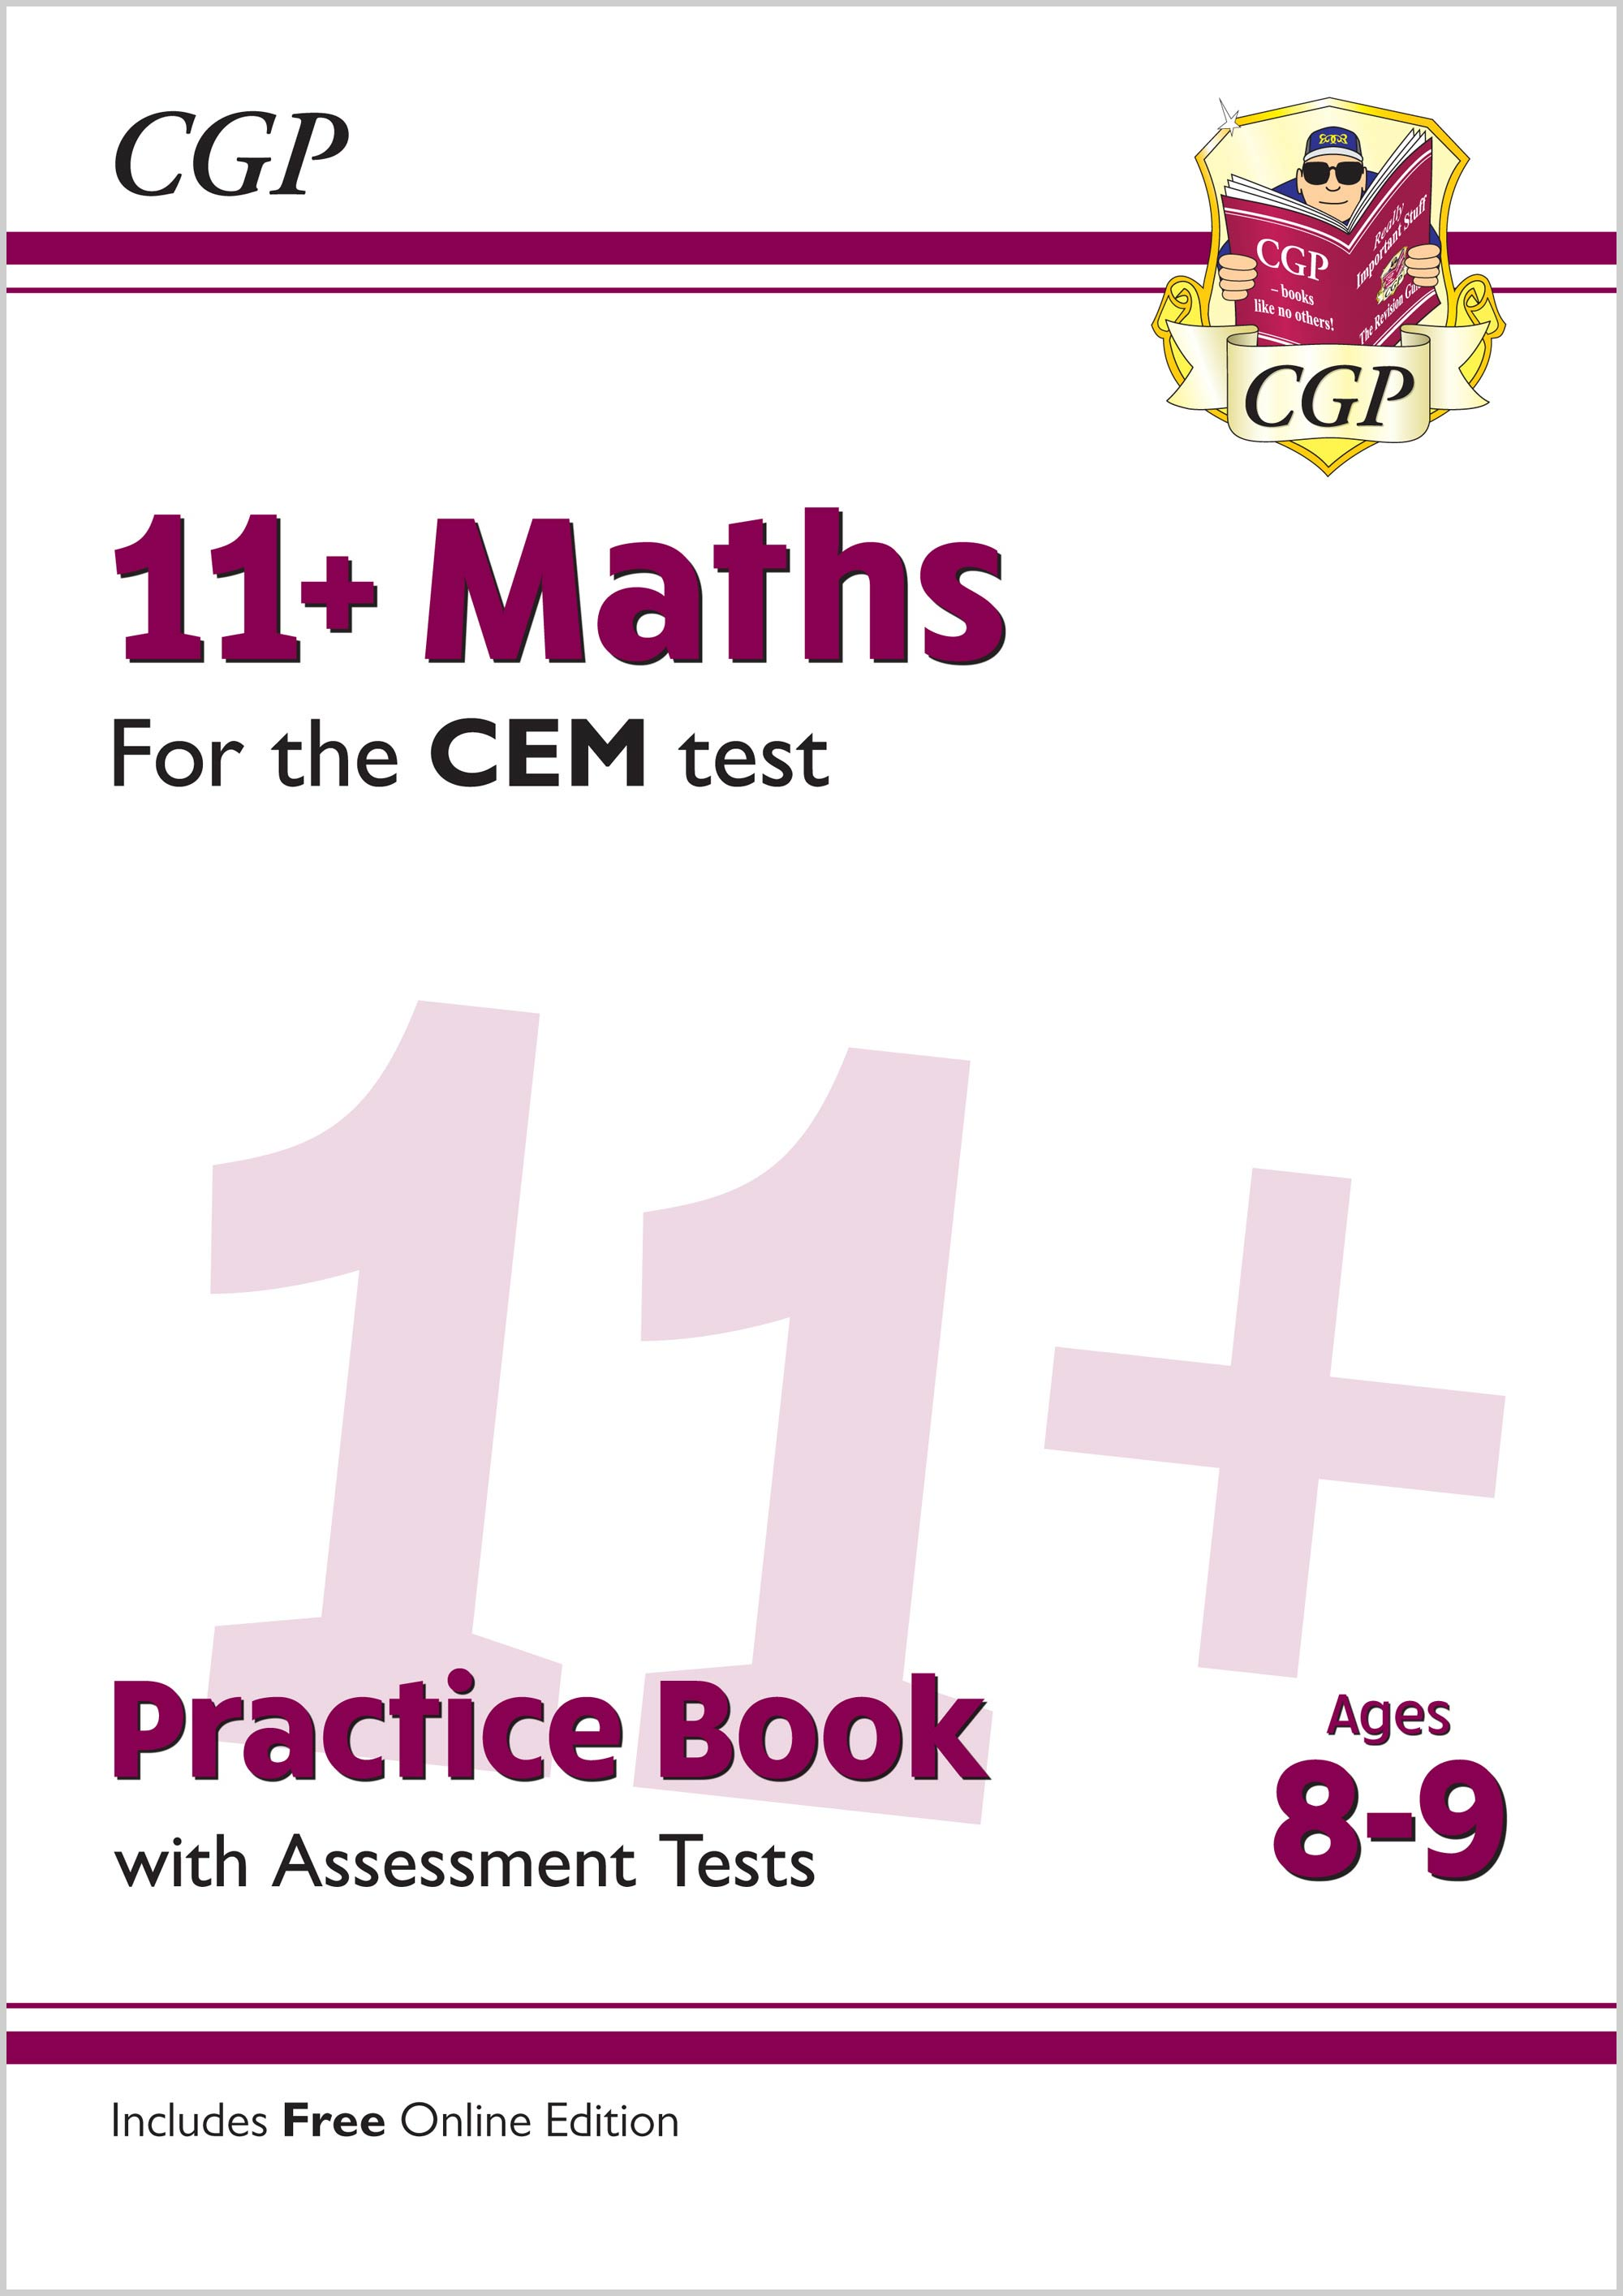 M4QDE2 - New 11+ CEM Maths Practice Book & Assessment Tests - Ages 8-9 (with Online Edition)